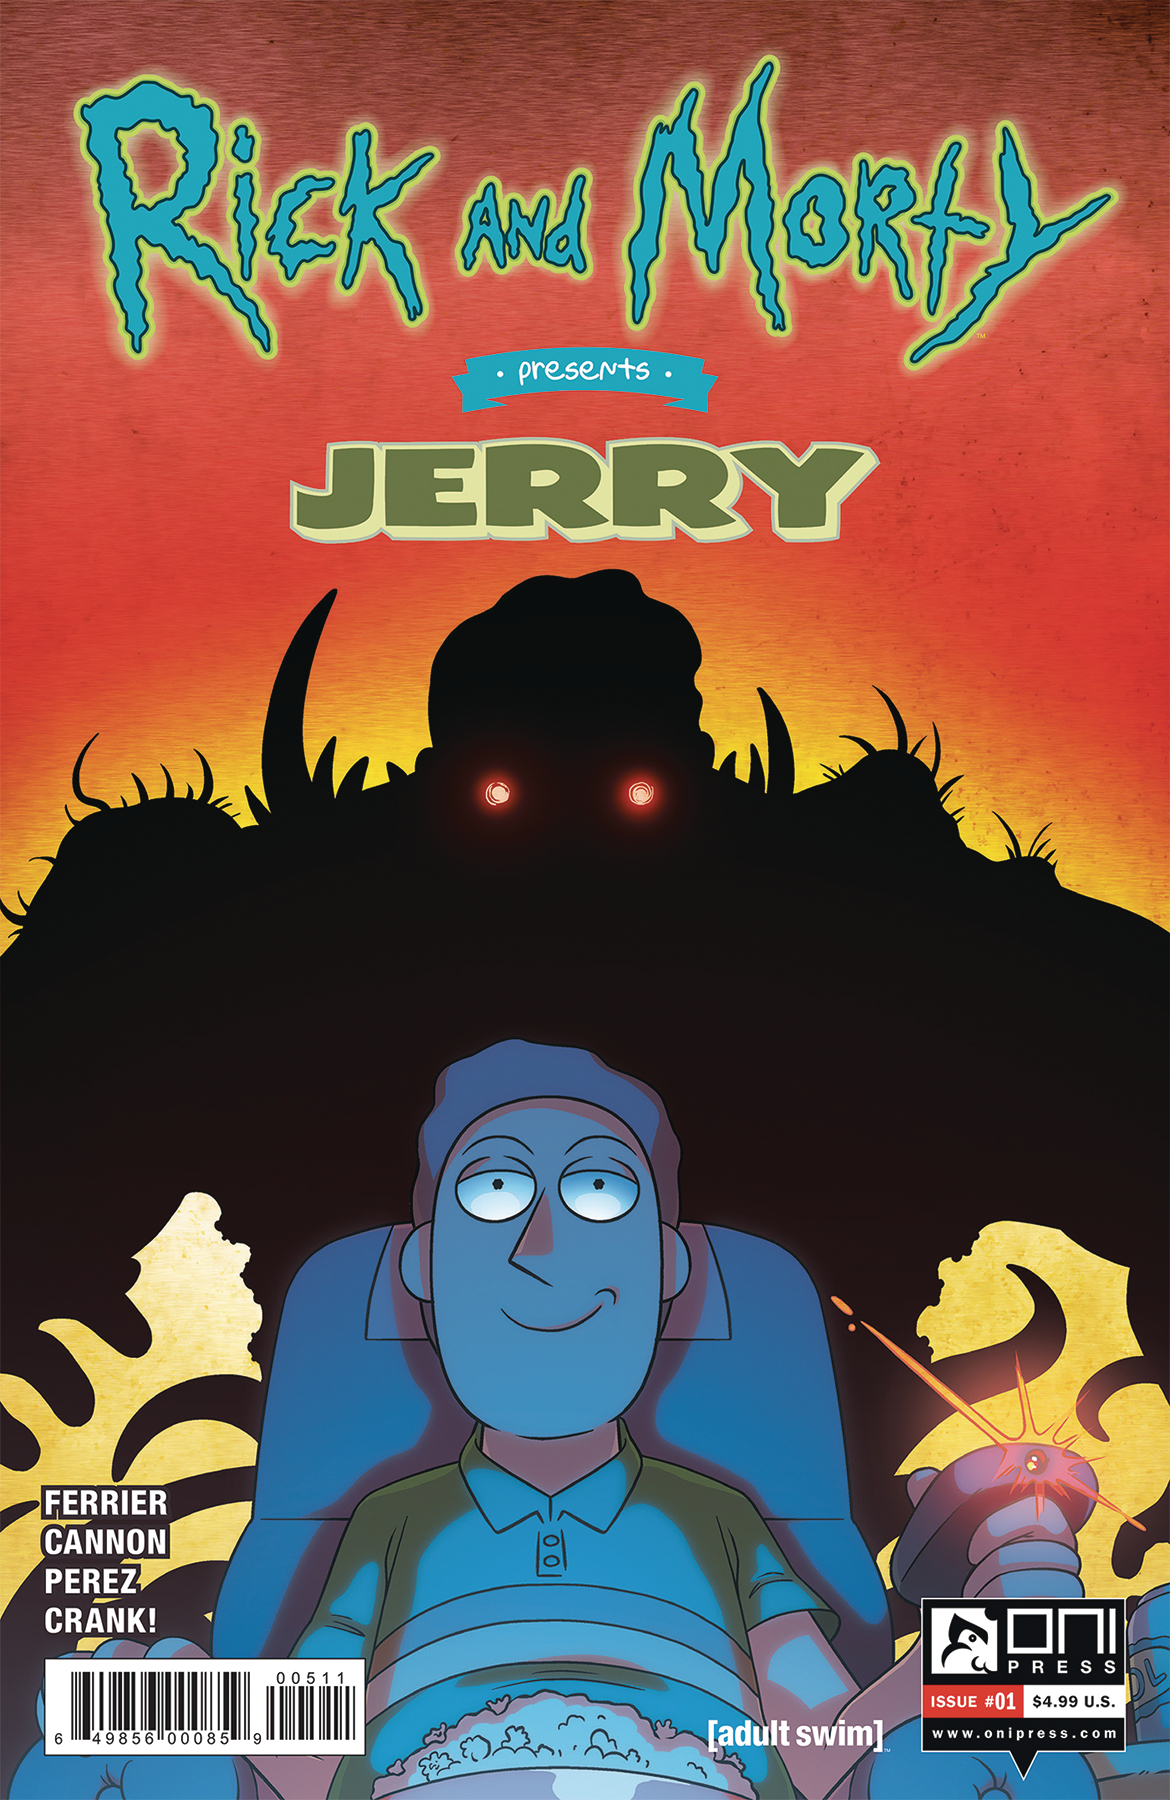 RICK & MORTY PRESENTS JERRY #1 CVR A